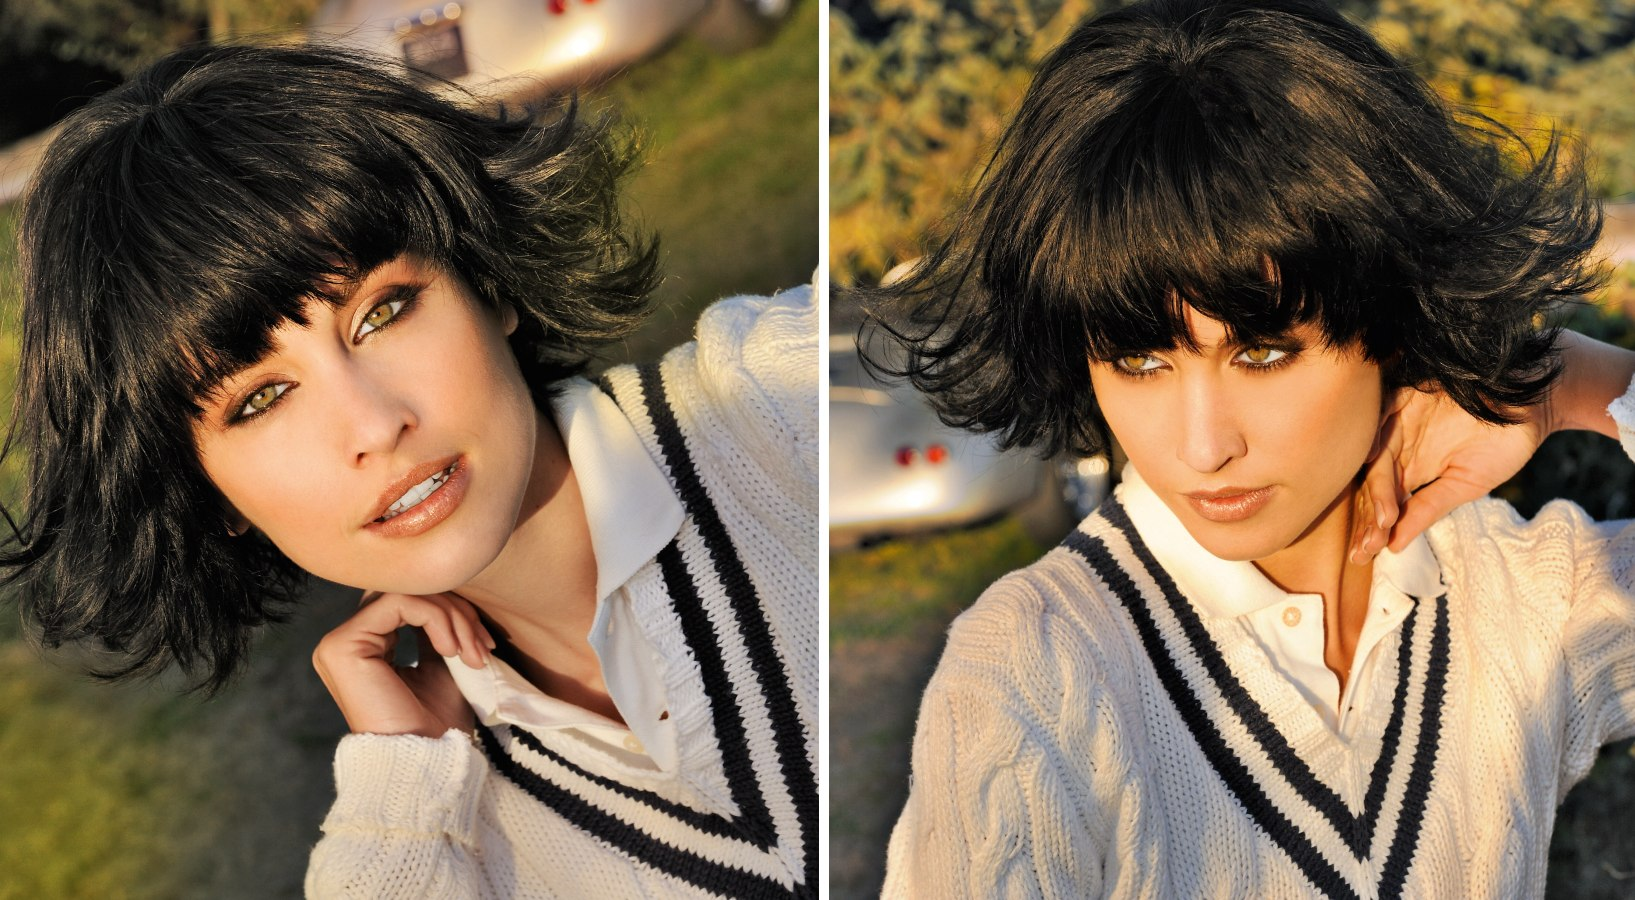 Versatile Wispy Bob With Bangs That Barely Cover The Eyebrows